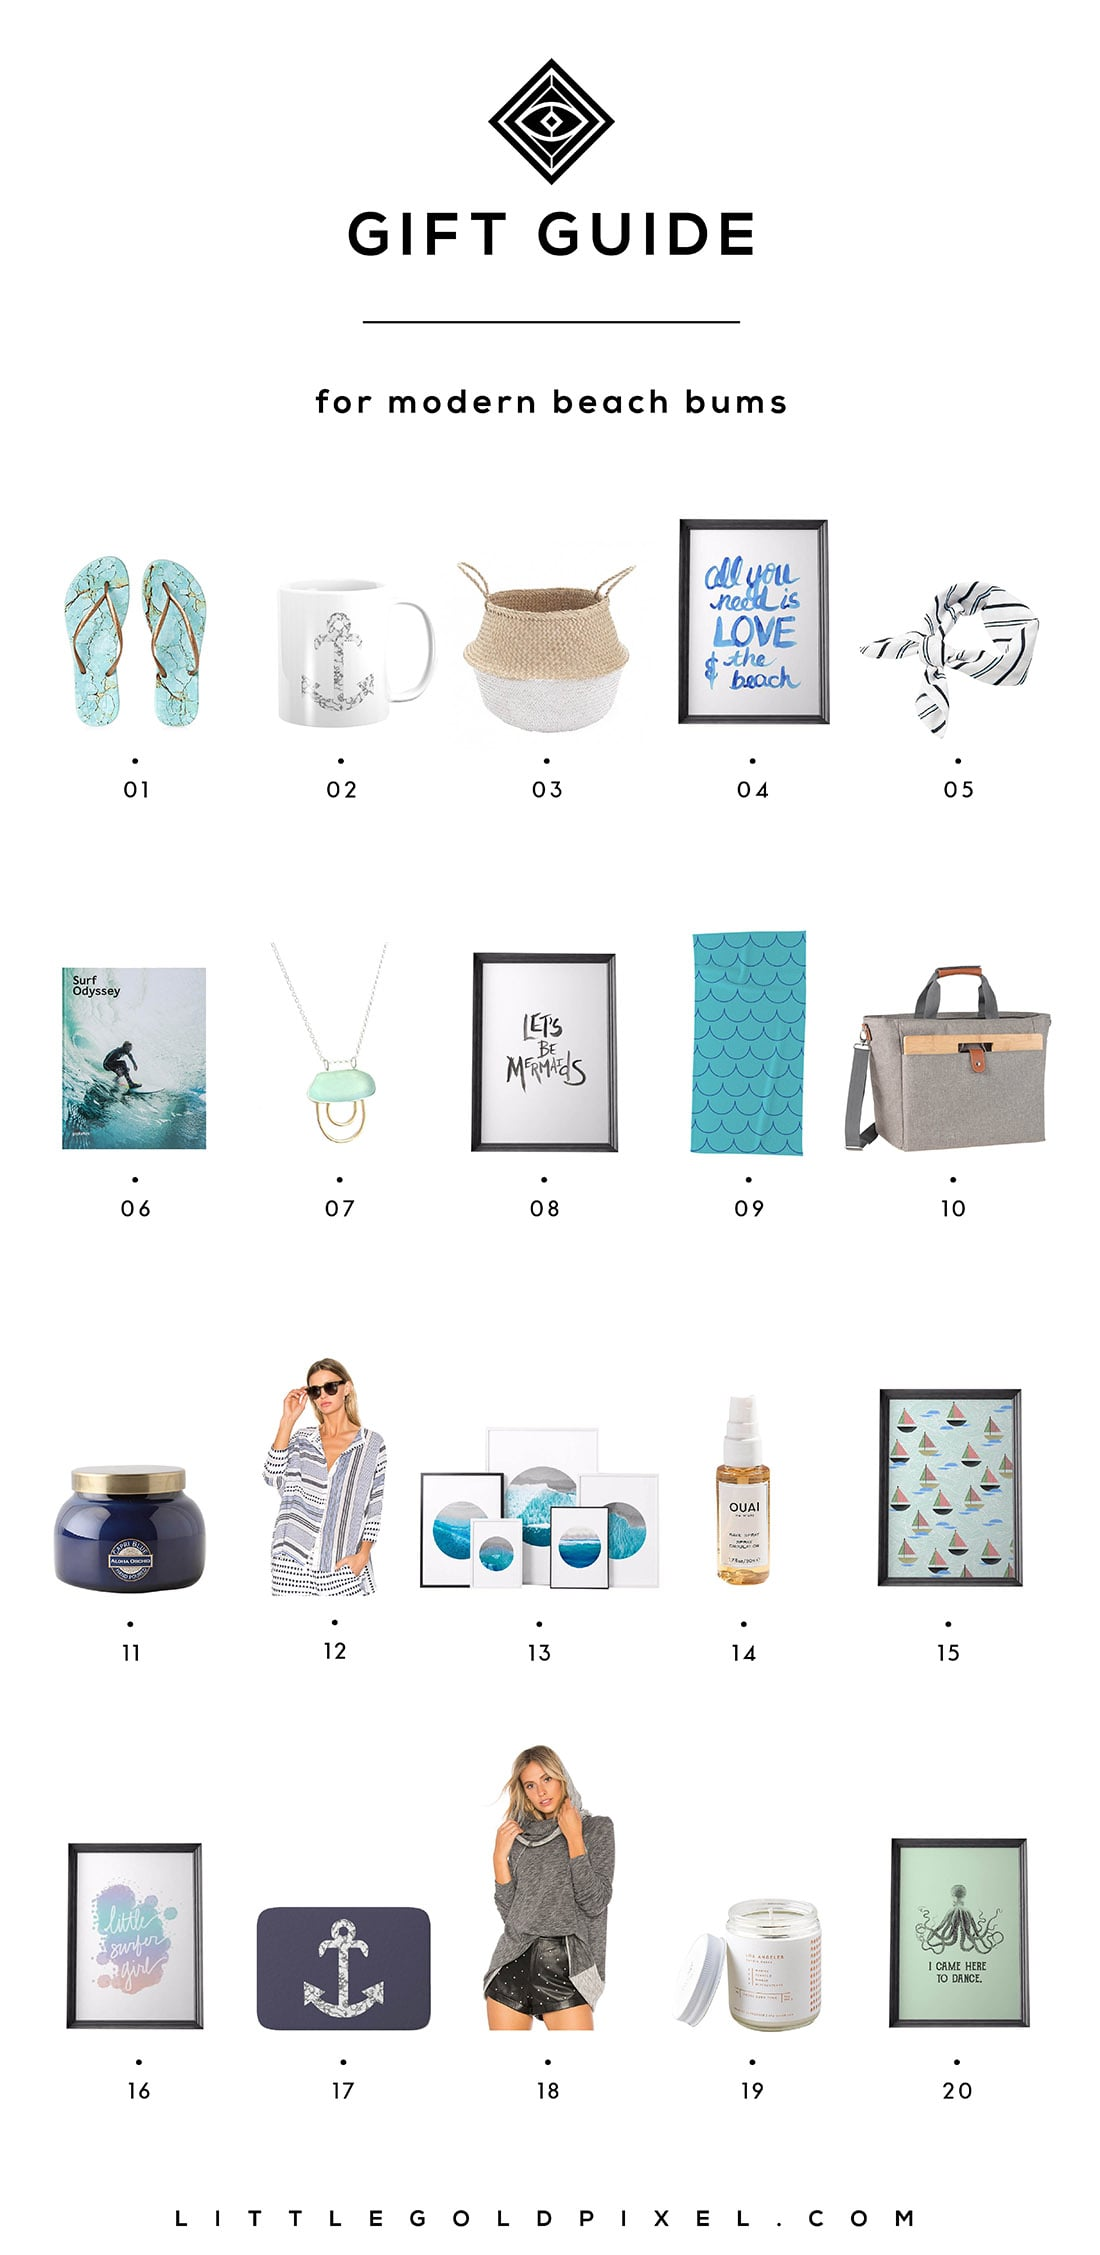 Little Gold Pixel's Beach Gift Ideas: Here are 20 gifts perfect for the modern beach bums in your life. Grab one for yourself while you're at it!